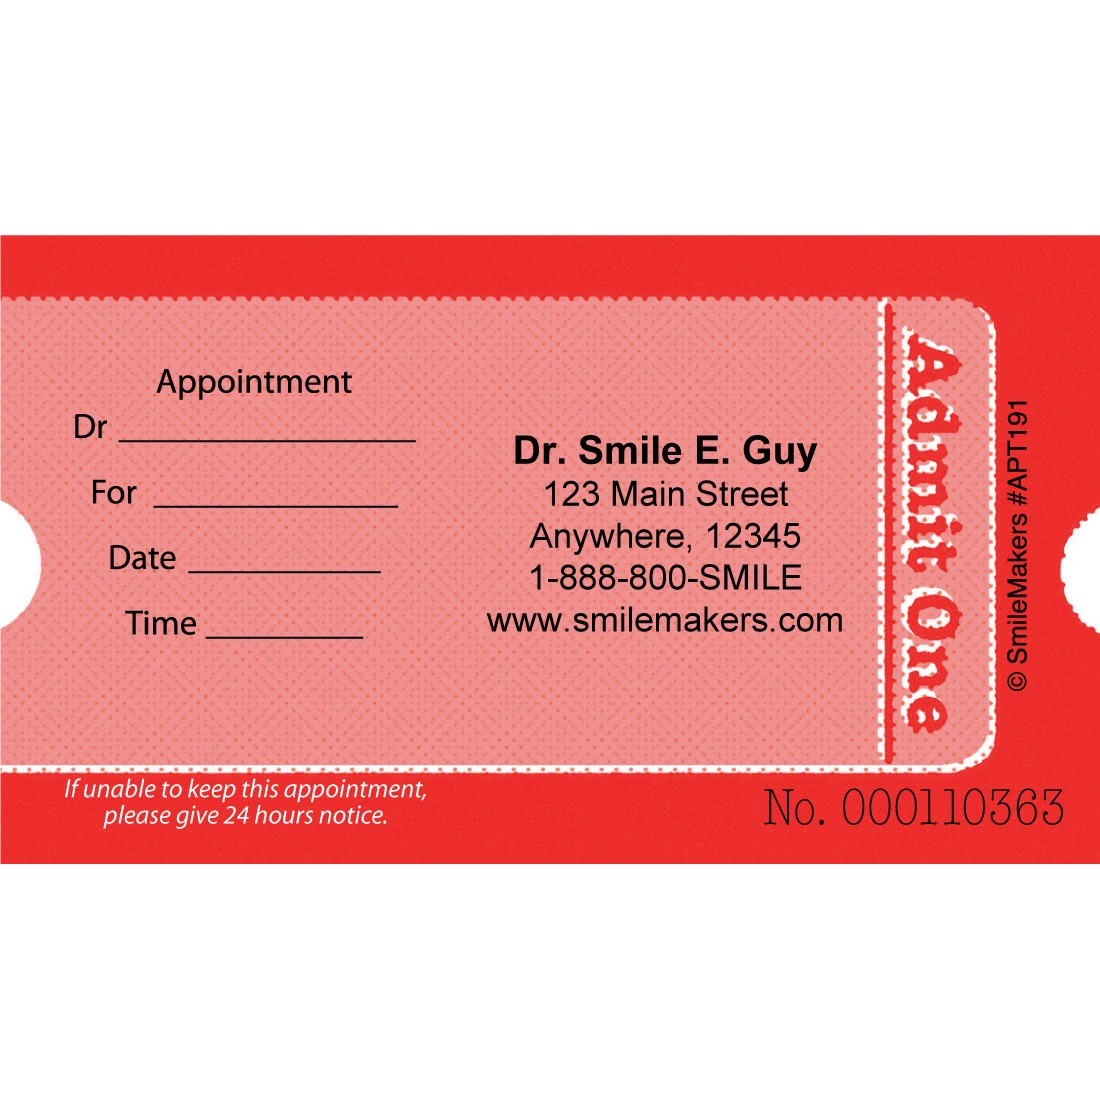 Custom Admit One Ticket Appointment Cards [image]